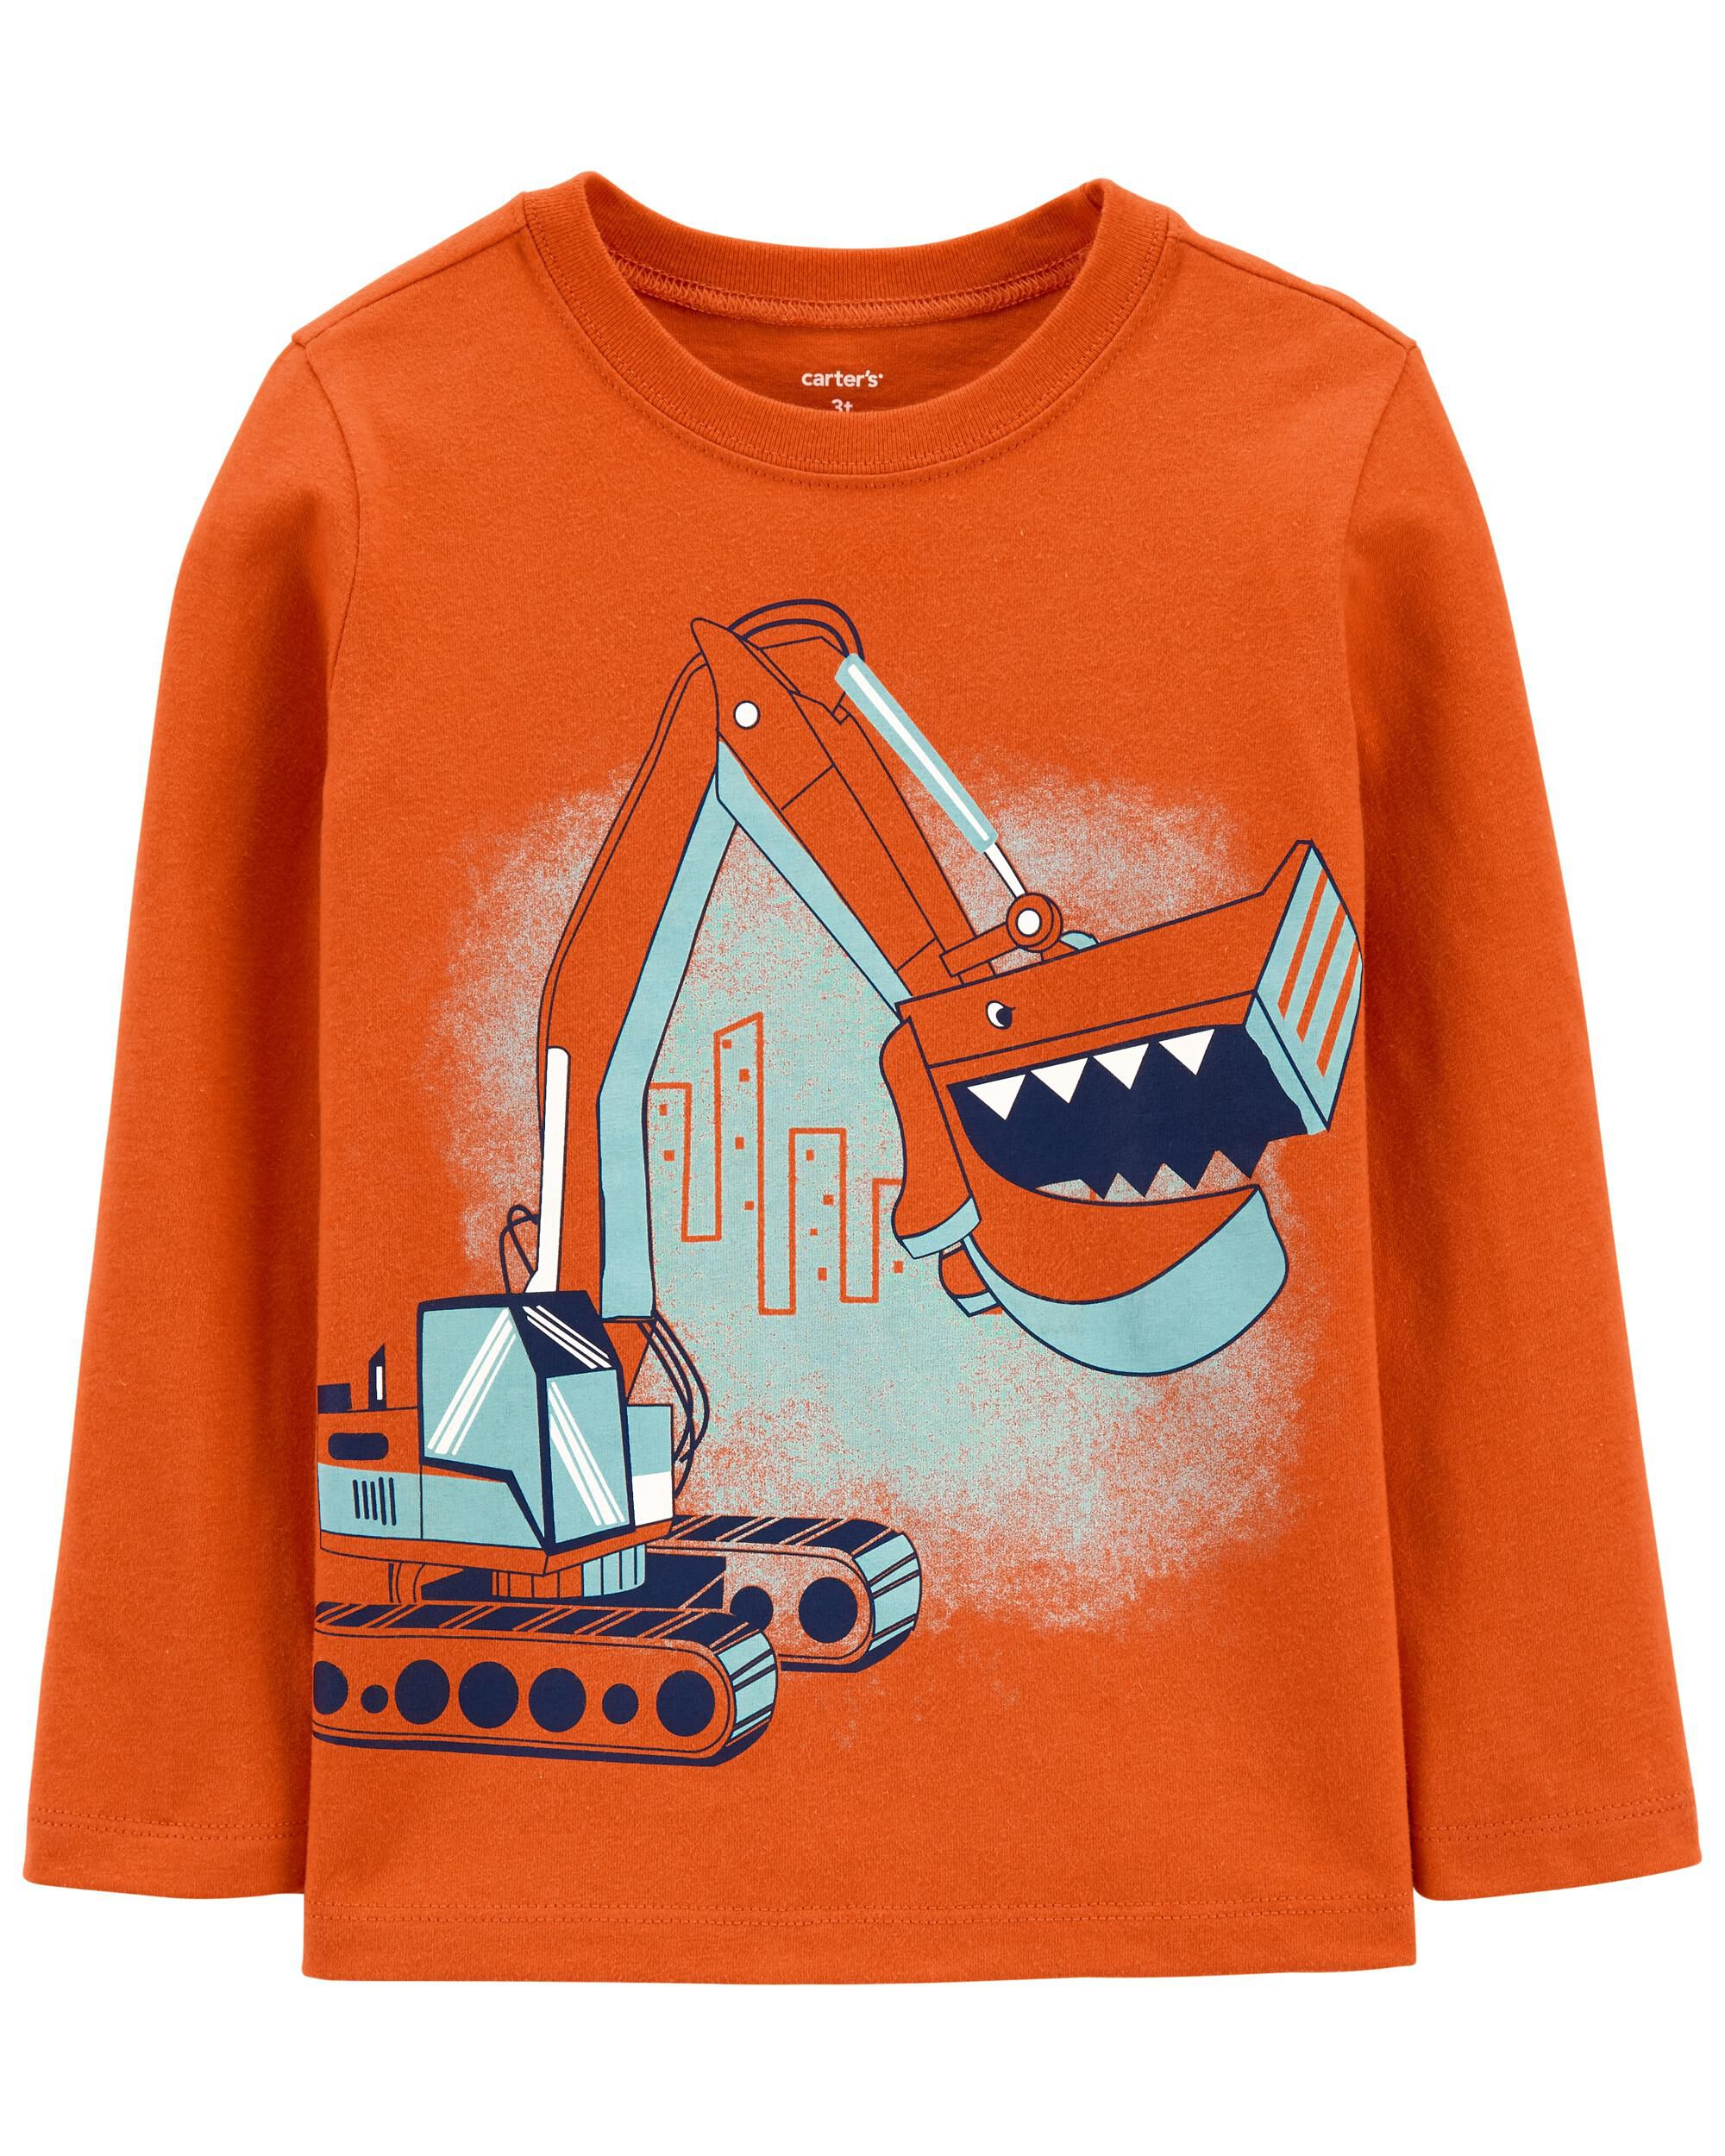 Carters Construction Jersey Tee